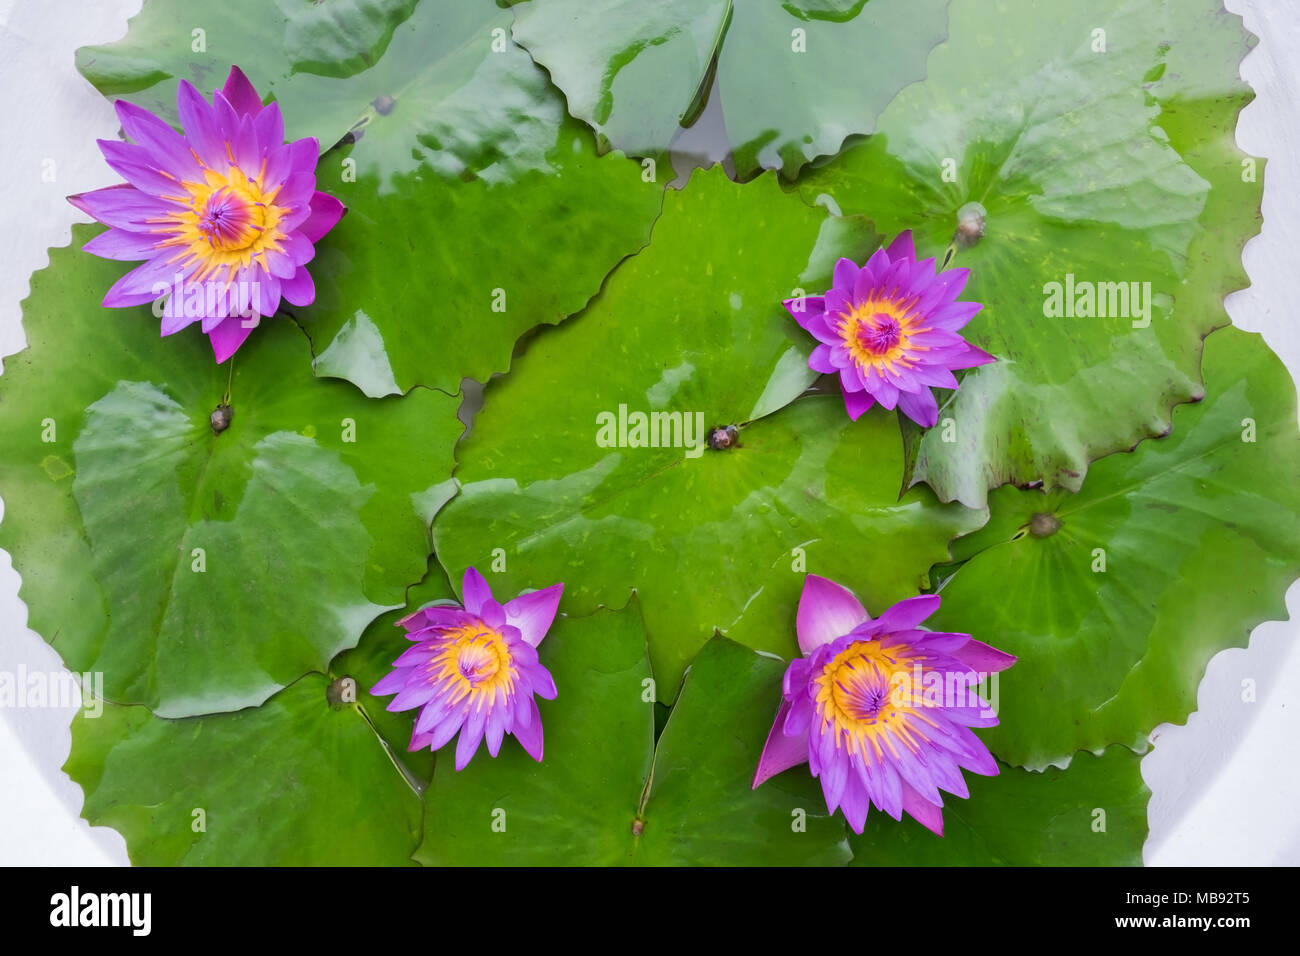 Water lily lotus flower and leaves in white pond stock photo water lily lotus flower and leaves in white pond izmirmasajfo Gallery